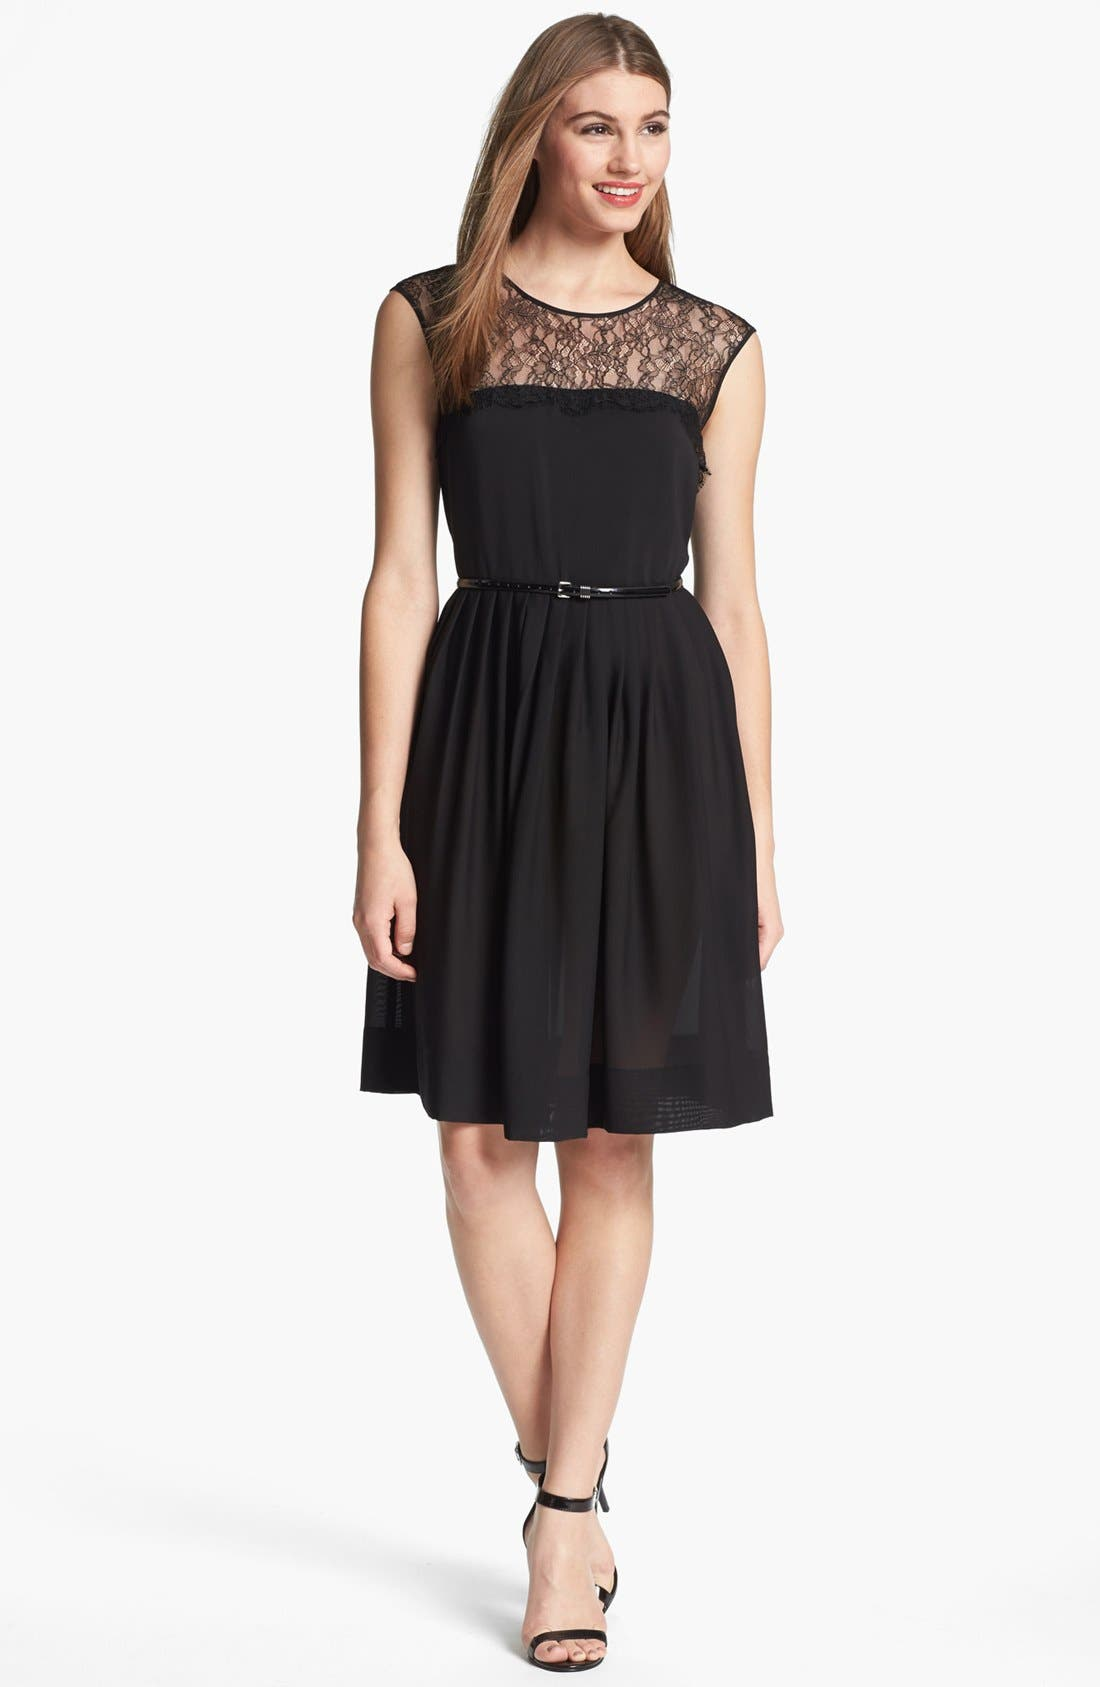 Alternate Image 1 Selected - Calvin Klein Lace Fit & Flare Dress